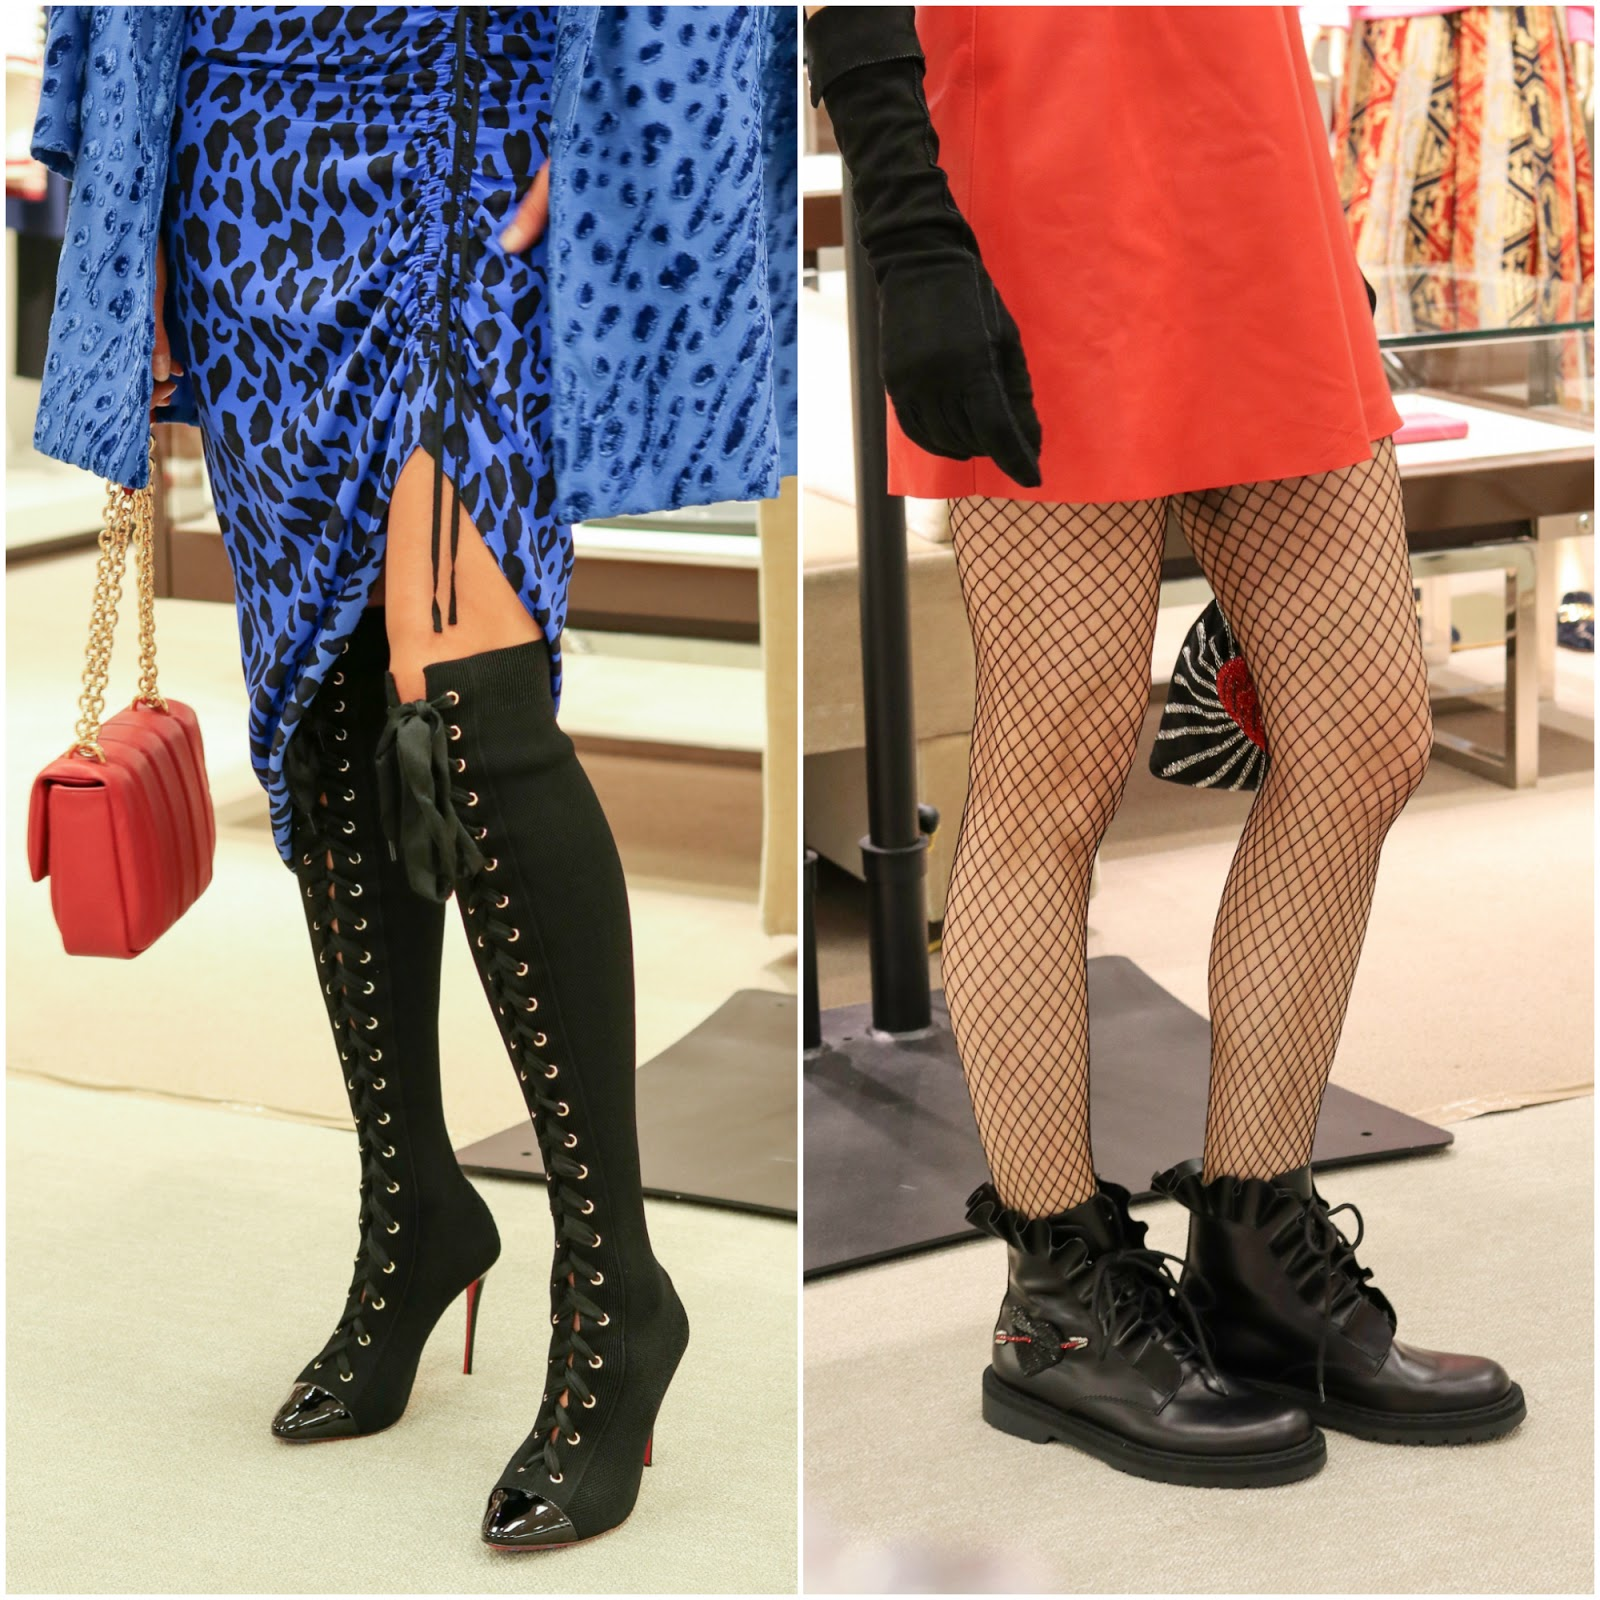 lace up boots 2018, lace up boots christian louboutin